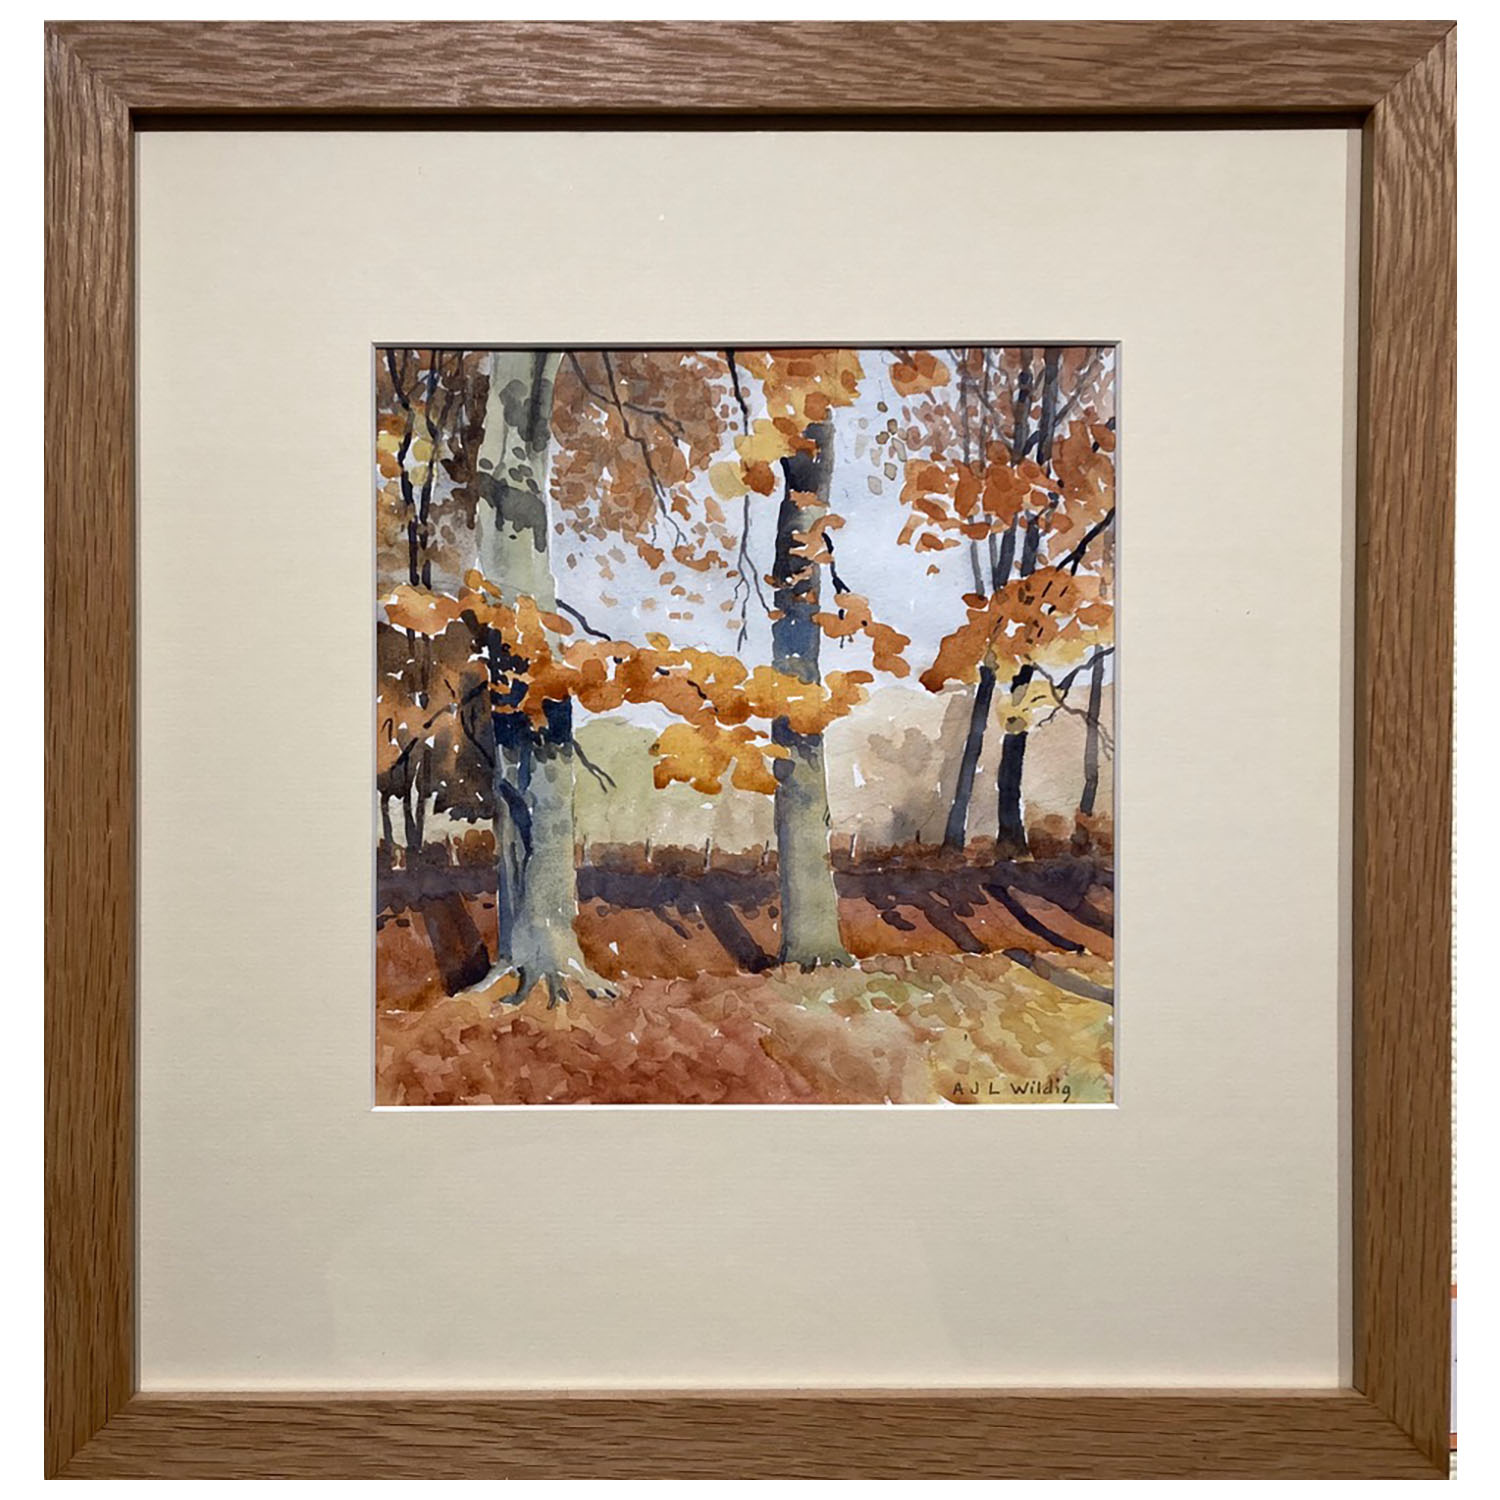 Anthony Wildig Autumn Beeches Watercolour 394x380mm £120 Framed